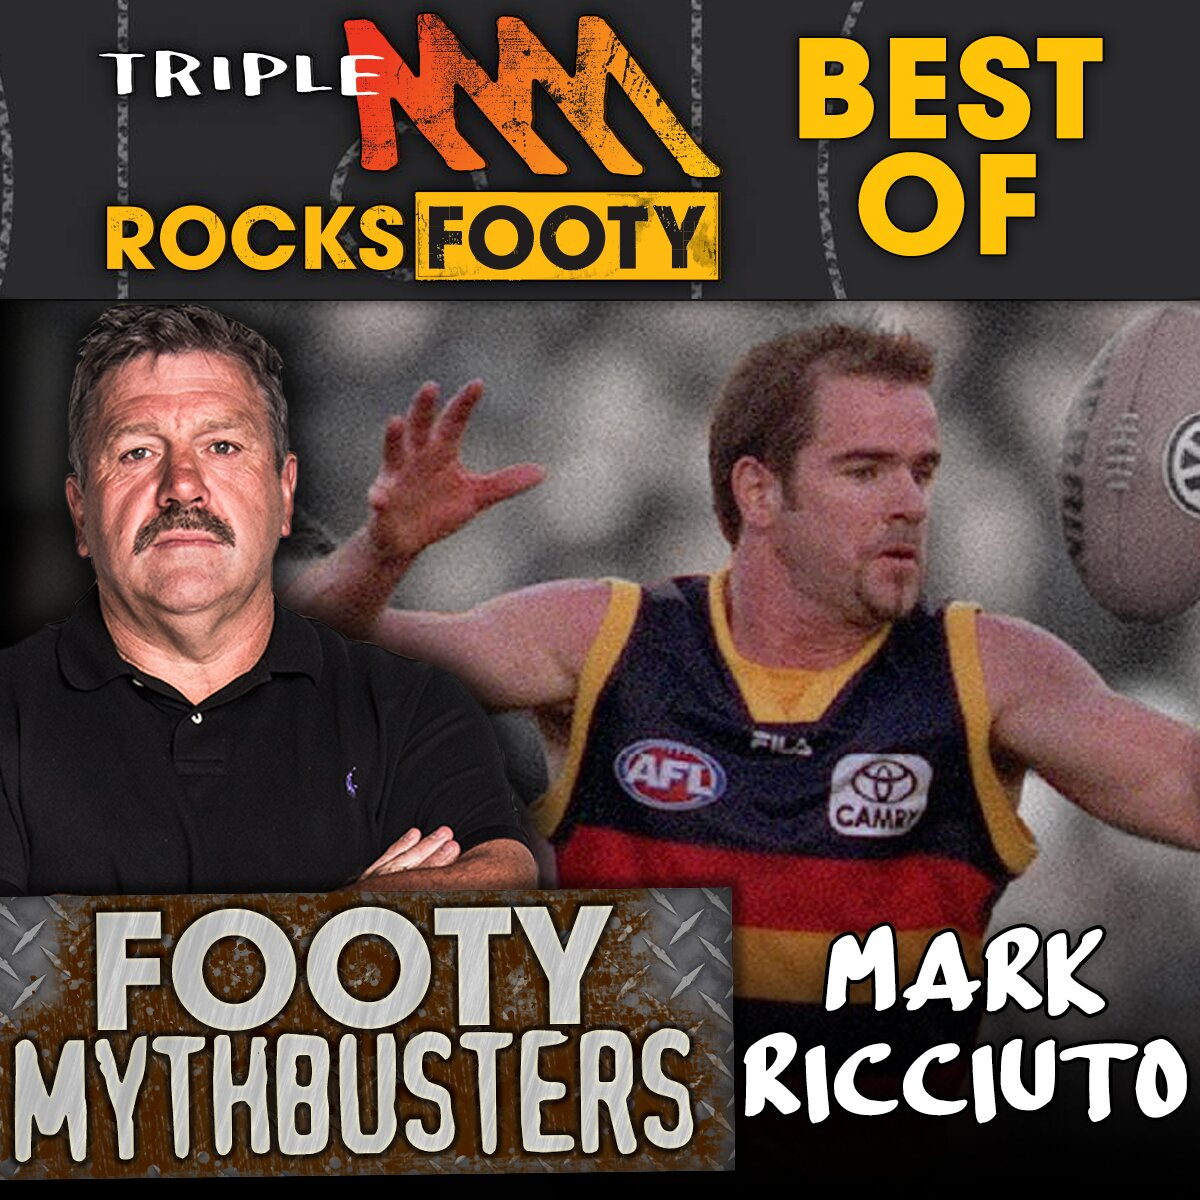 Footy Mythbusters: Mark Ricciuto